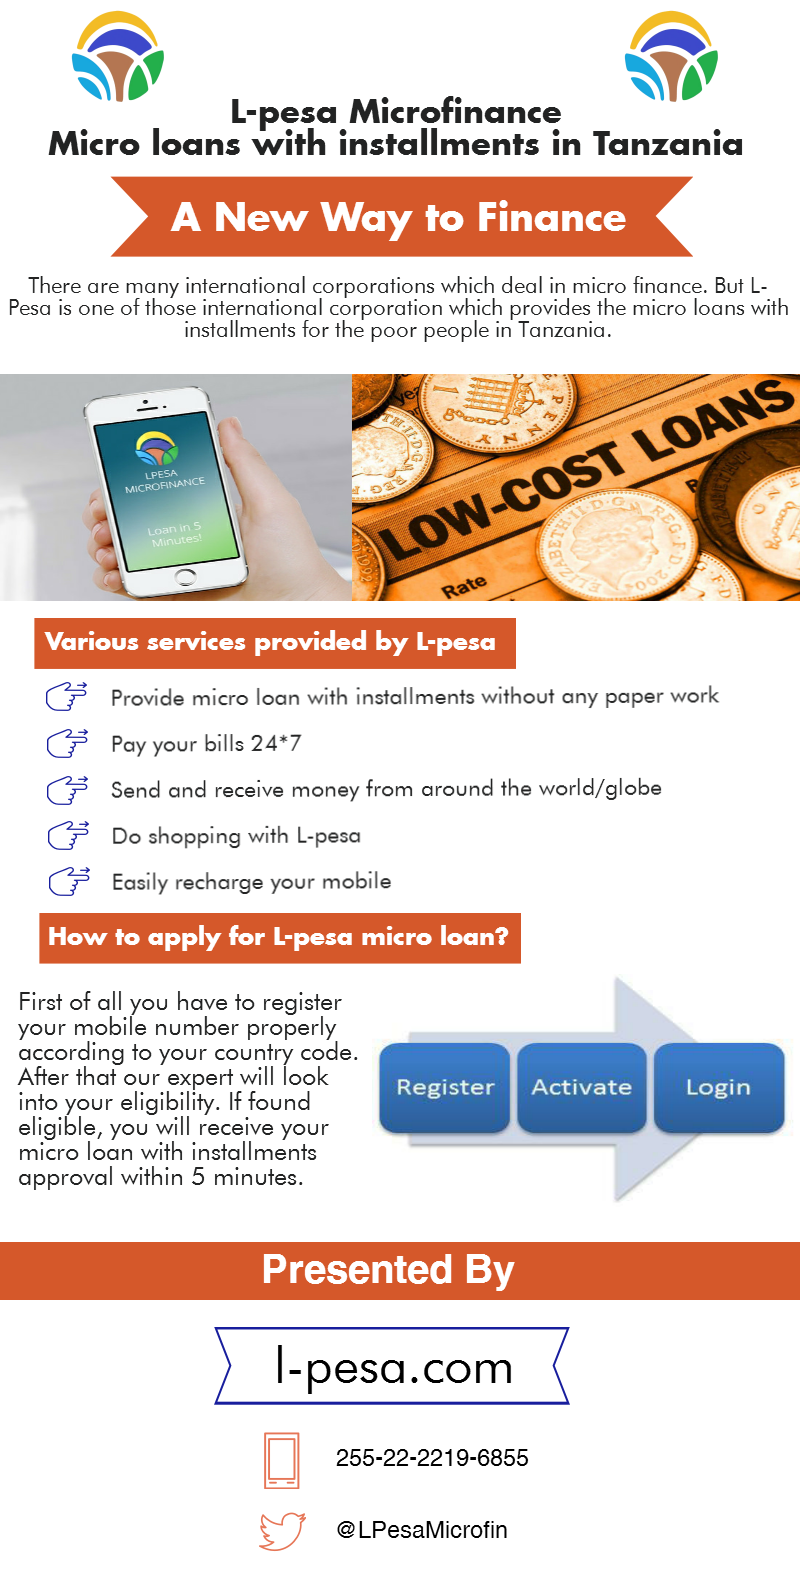 Lpesa makes microloan with installments application easy